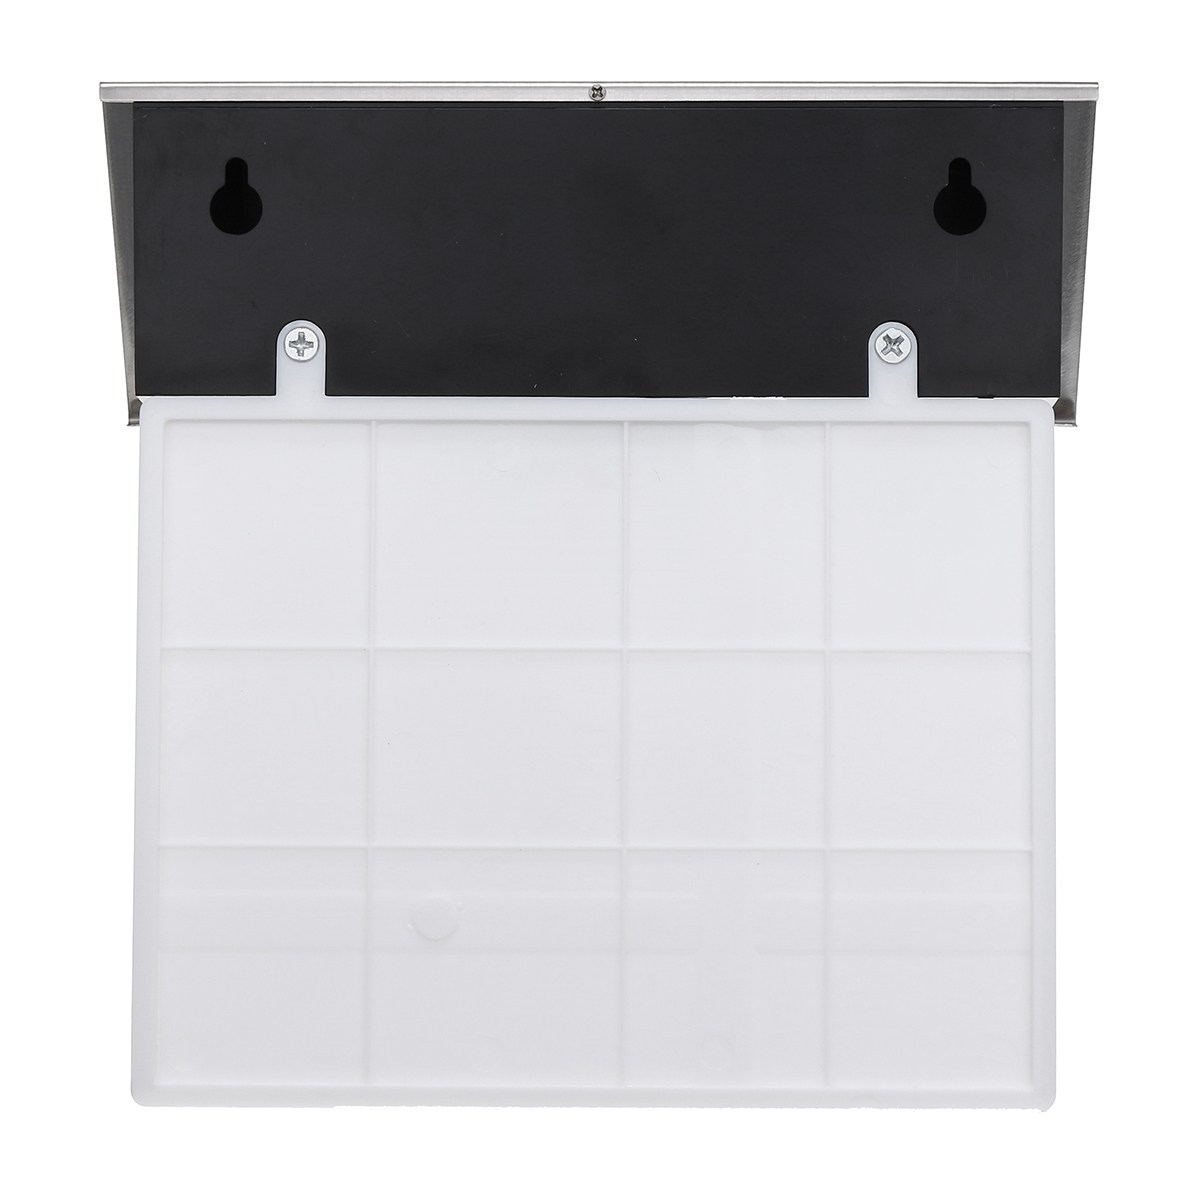 Waterproof Address Plaques LED Solar Powered Light Stainless Steel LED Porch Light Letter Number Paster